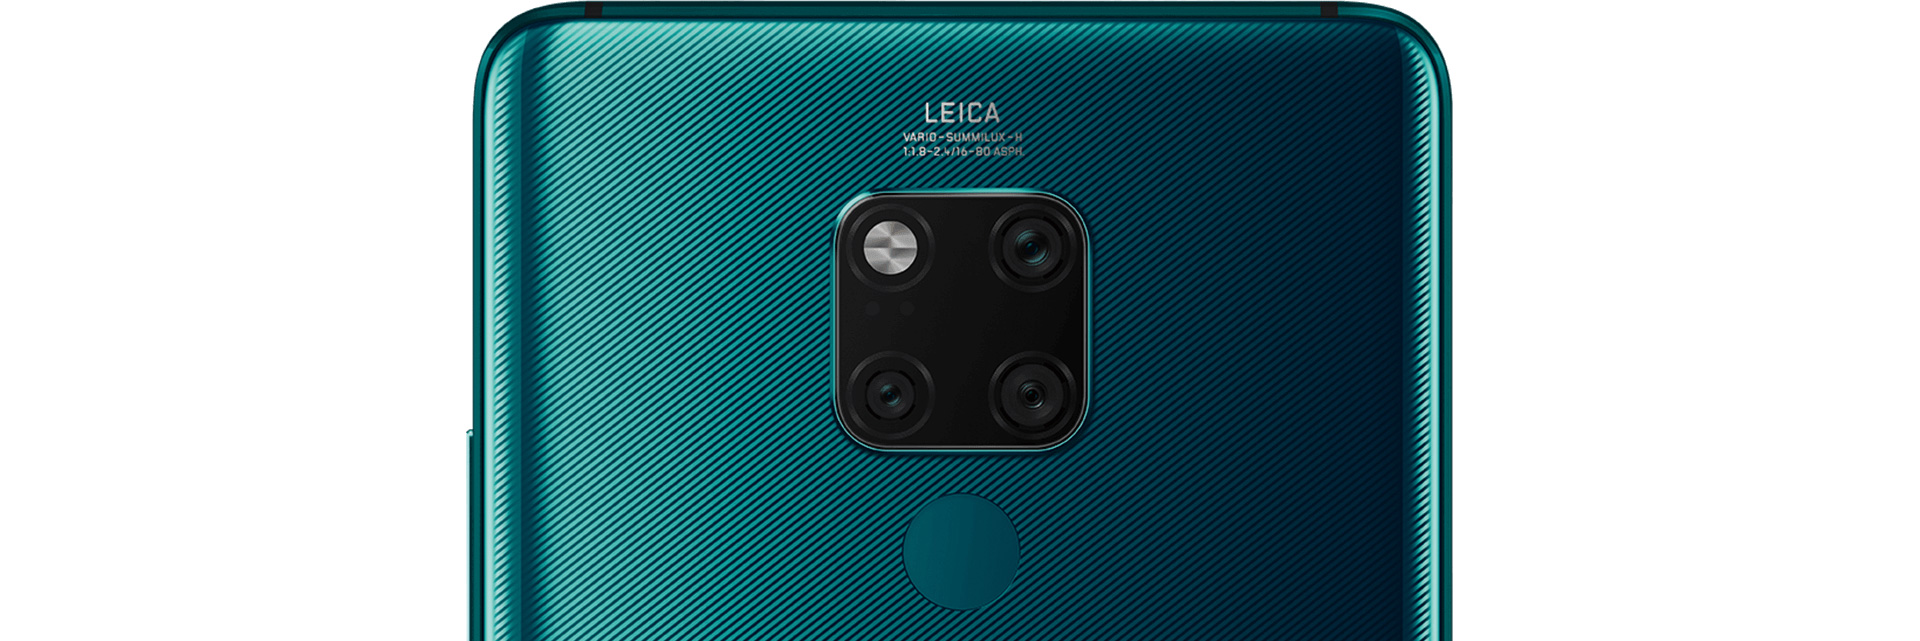 HUAWEI Mate 20 X 5G leica triple camera